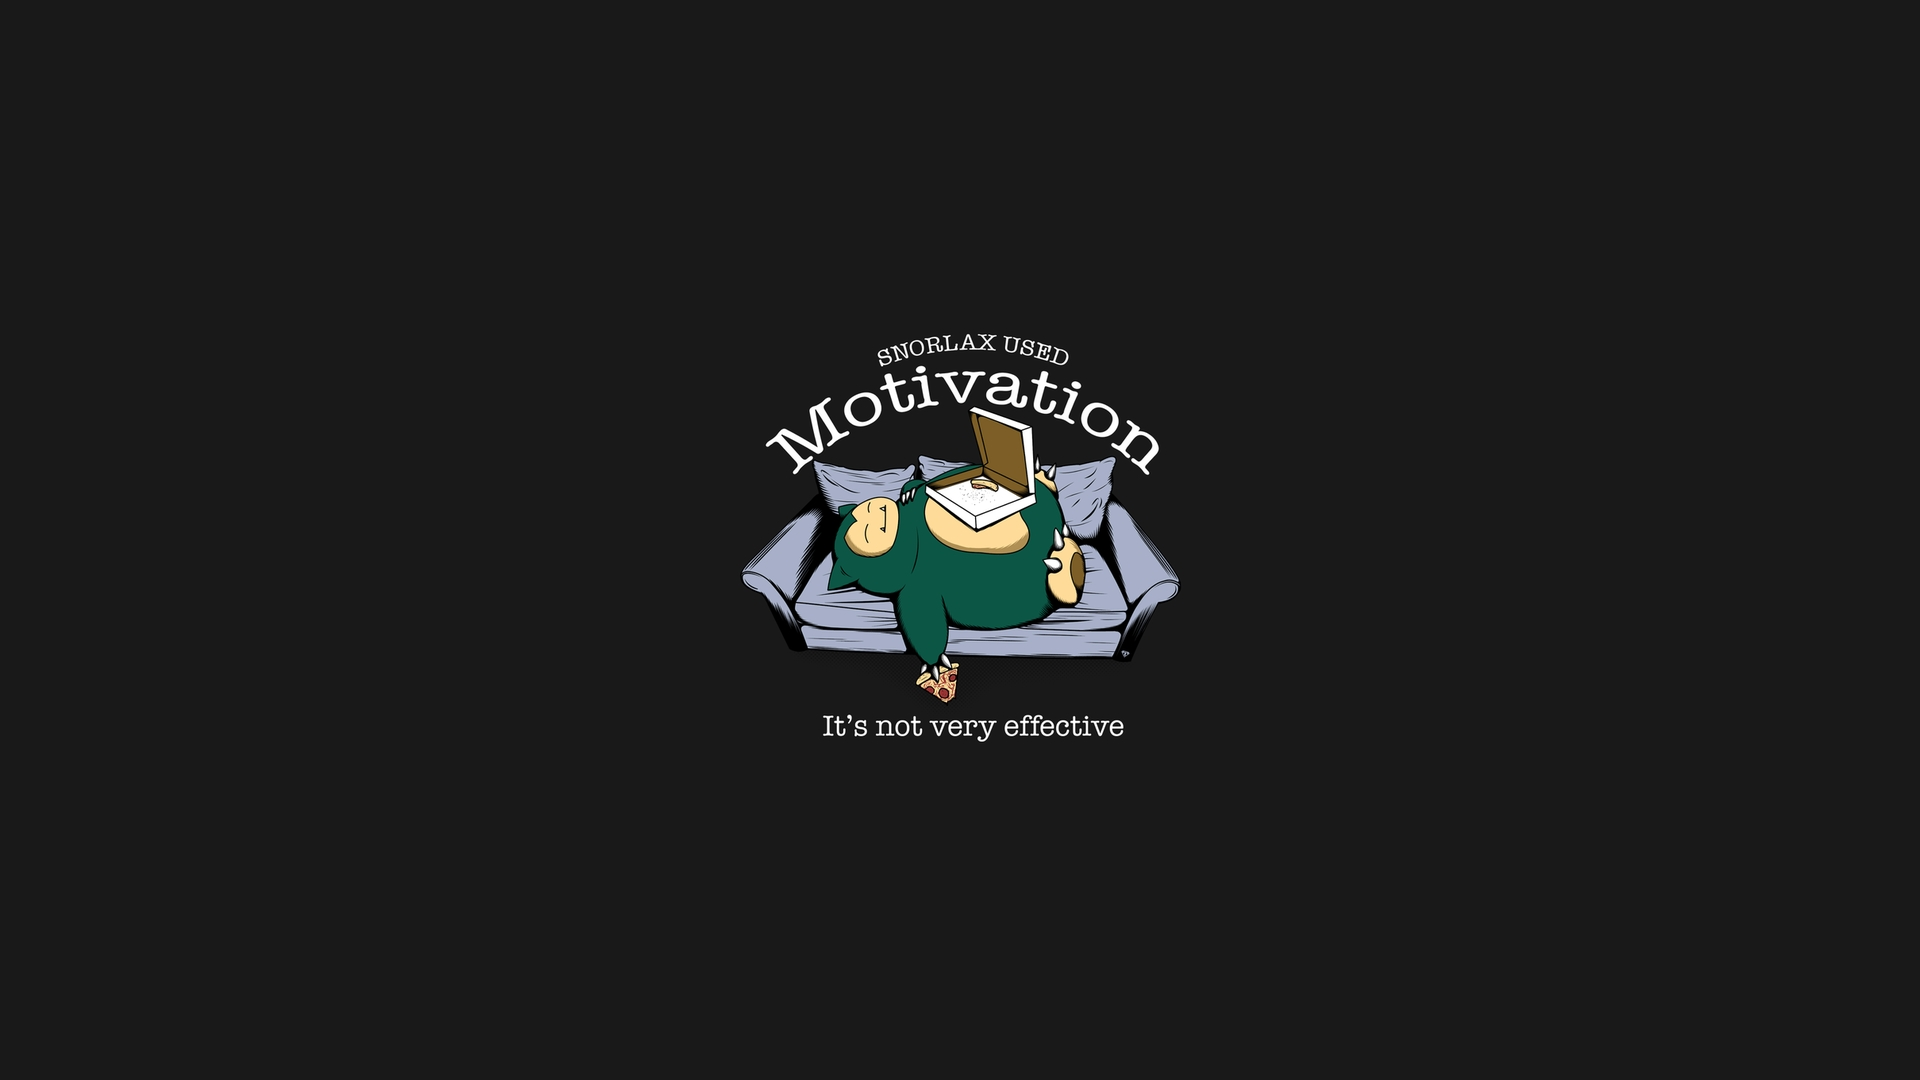 Snorlax Used Motivation [1920x1080] wallpaper 1920x1080